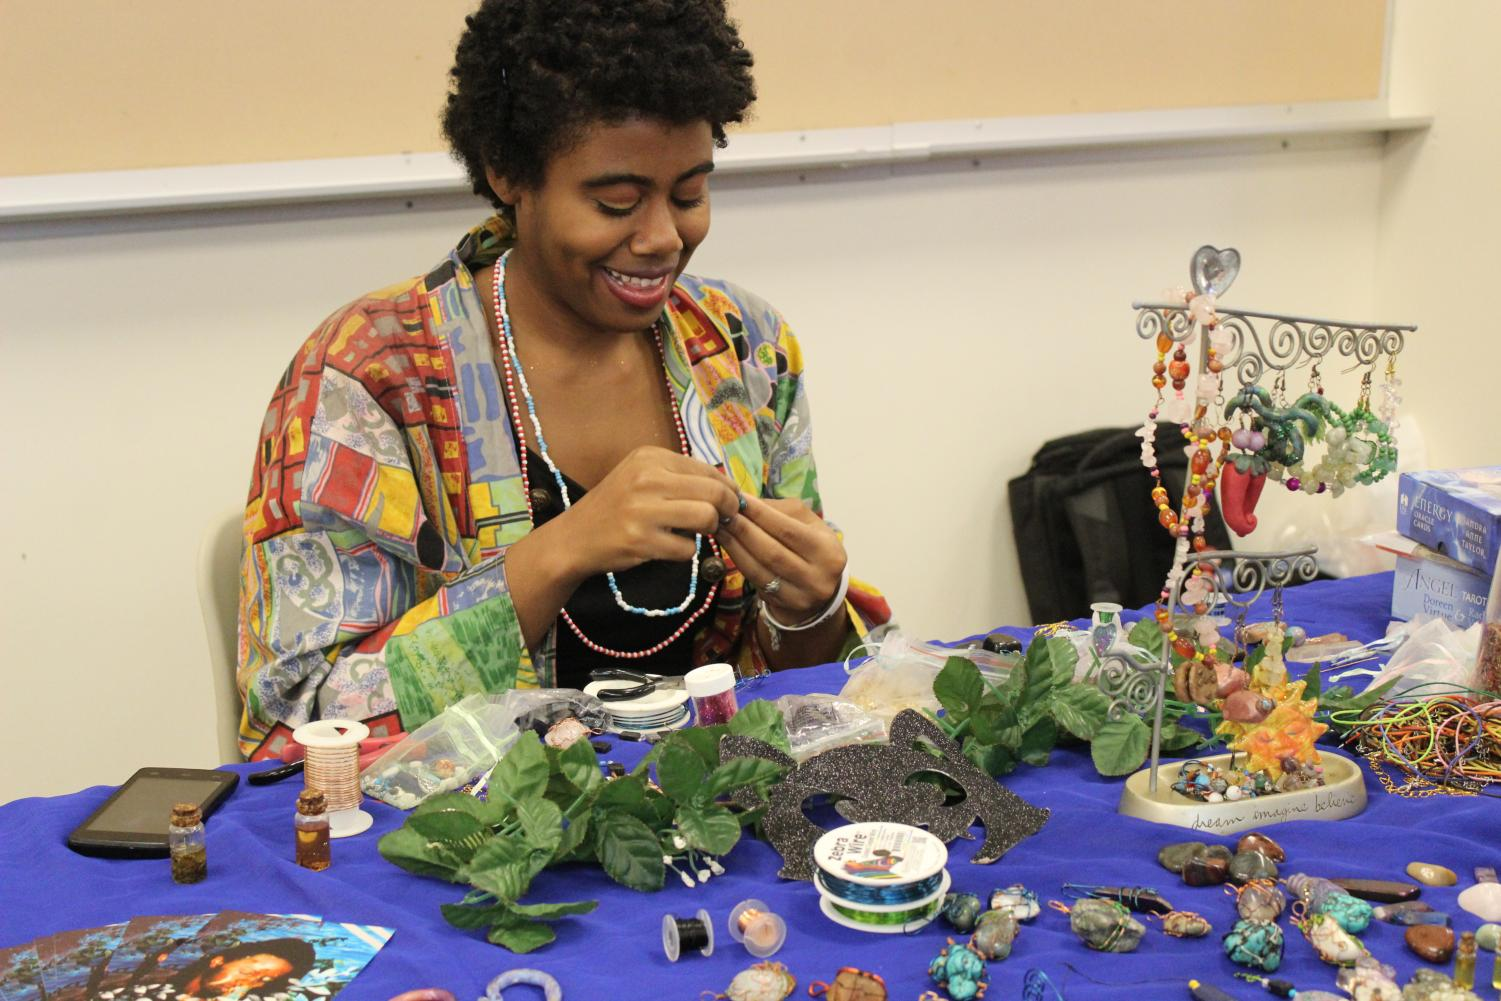 Shirts, bags, jewelry and posters were just some of the items up for sale at LASO's event.